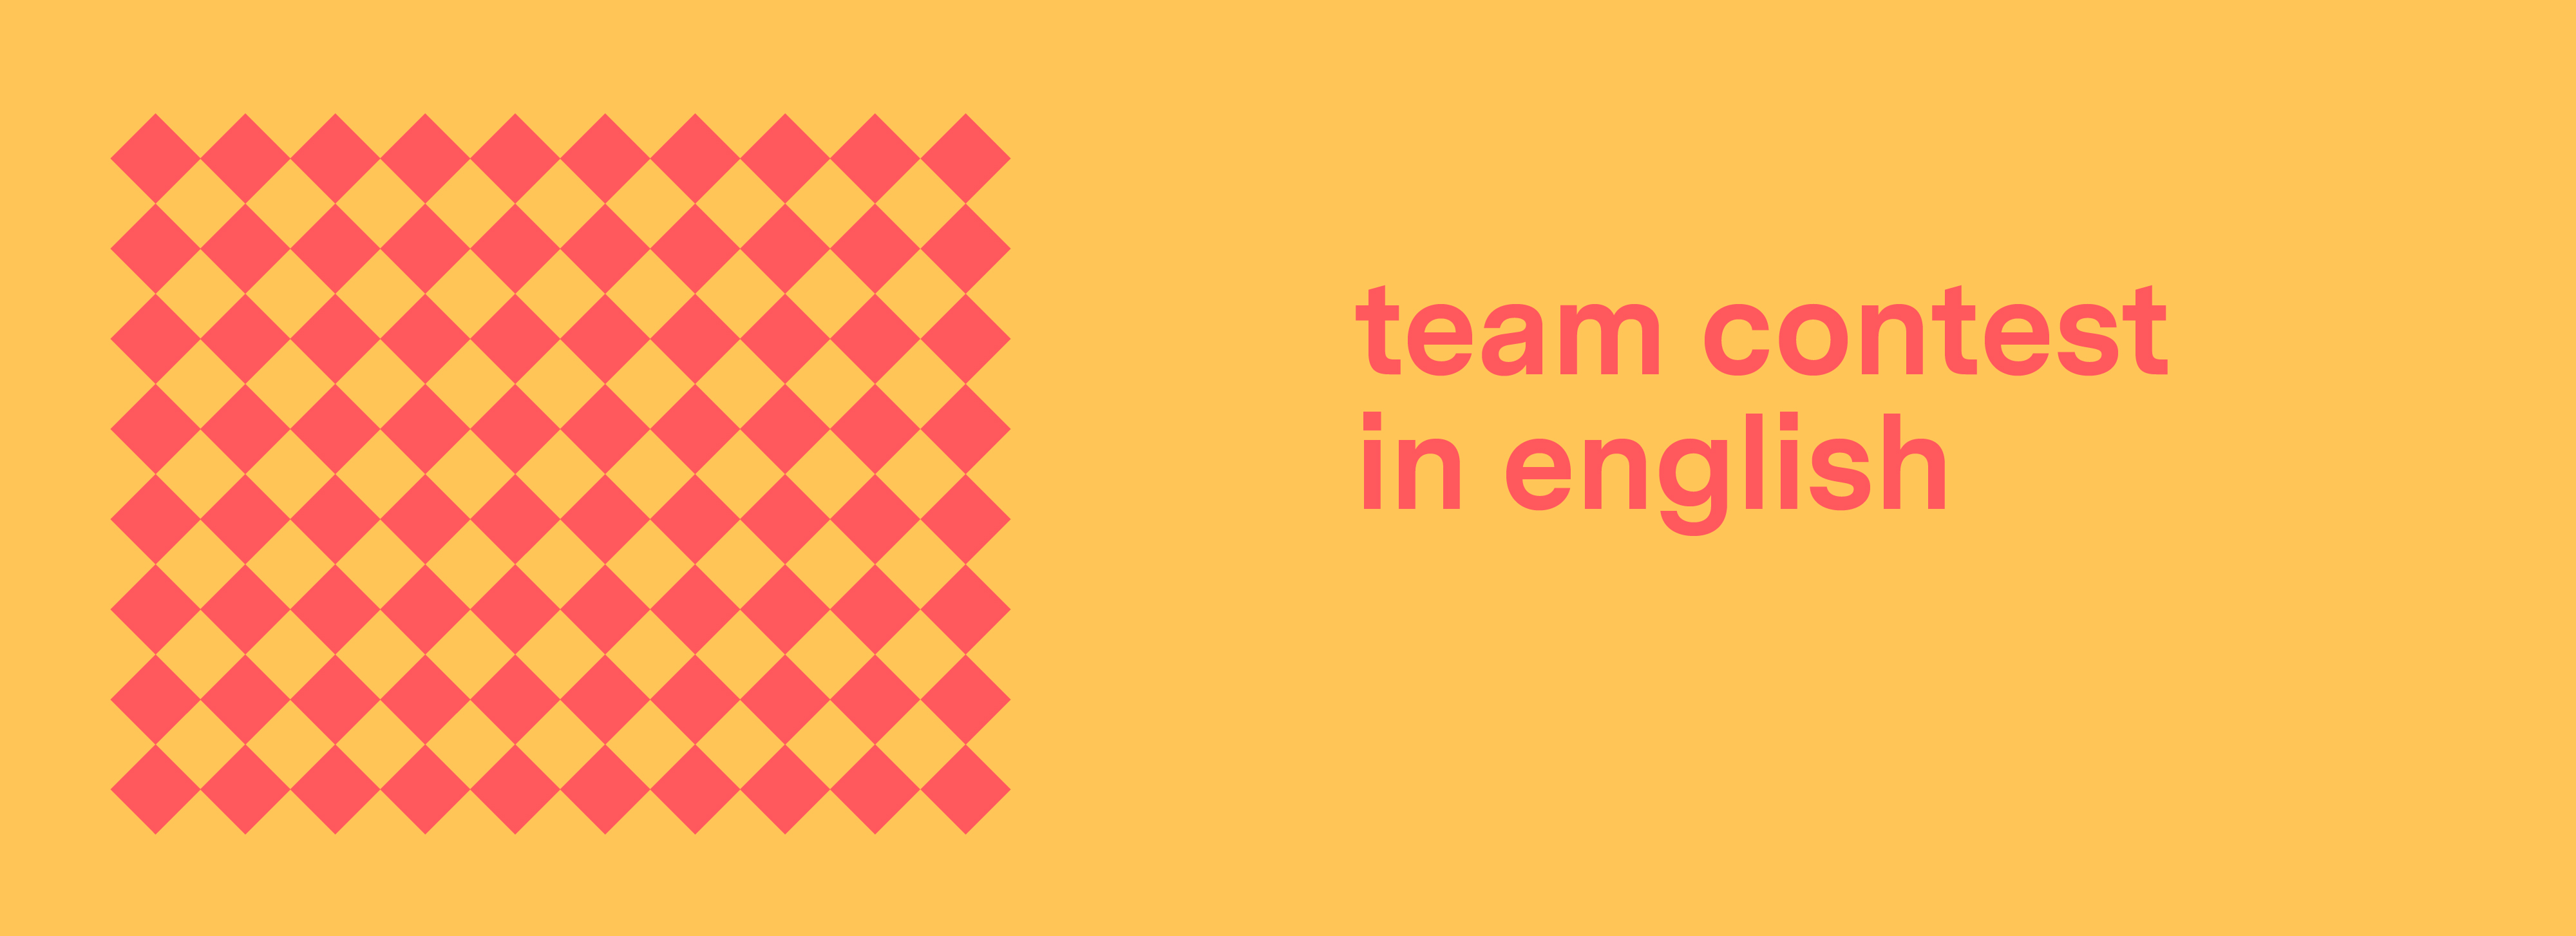 team-contest-in-english-large